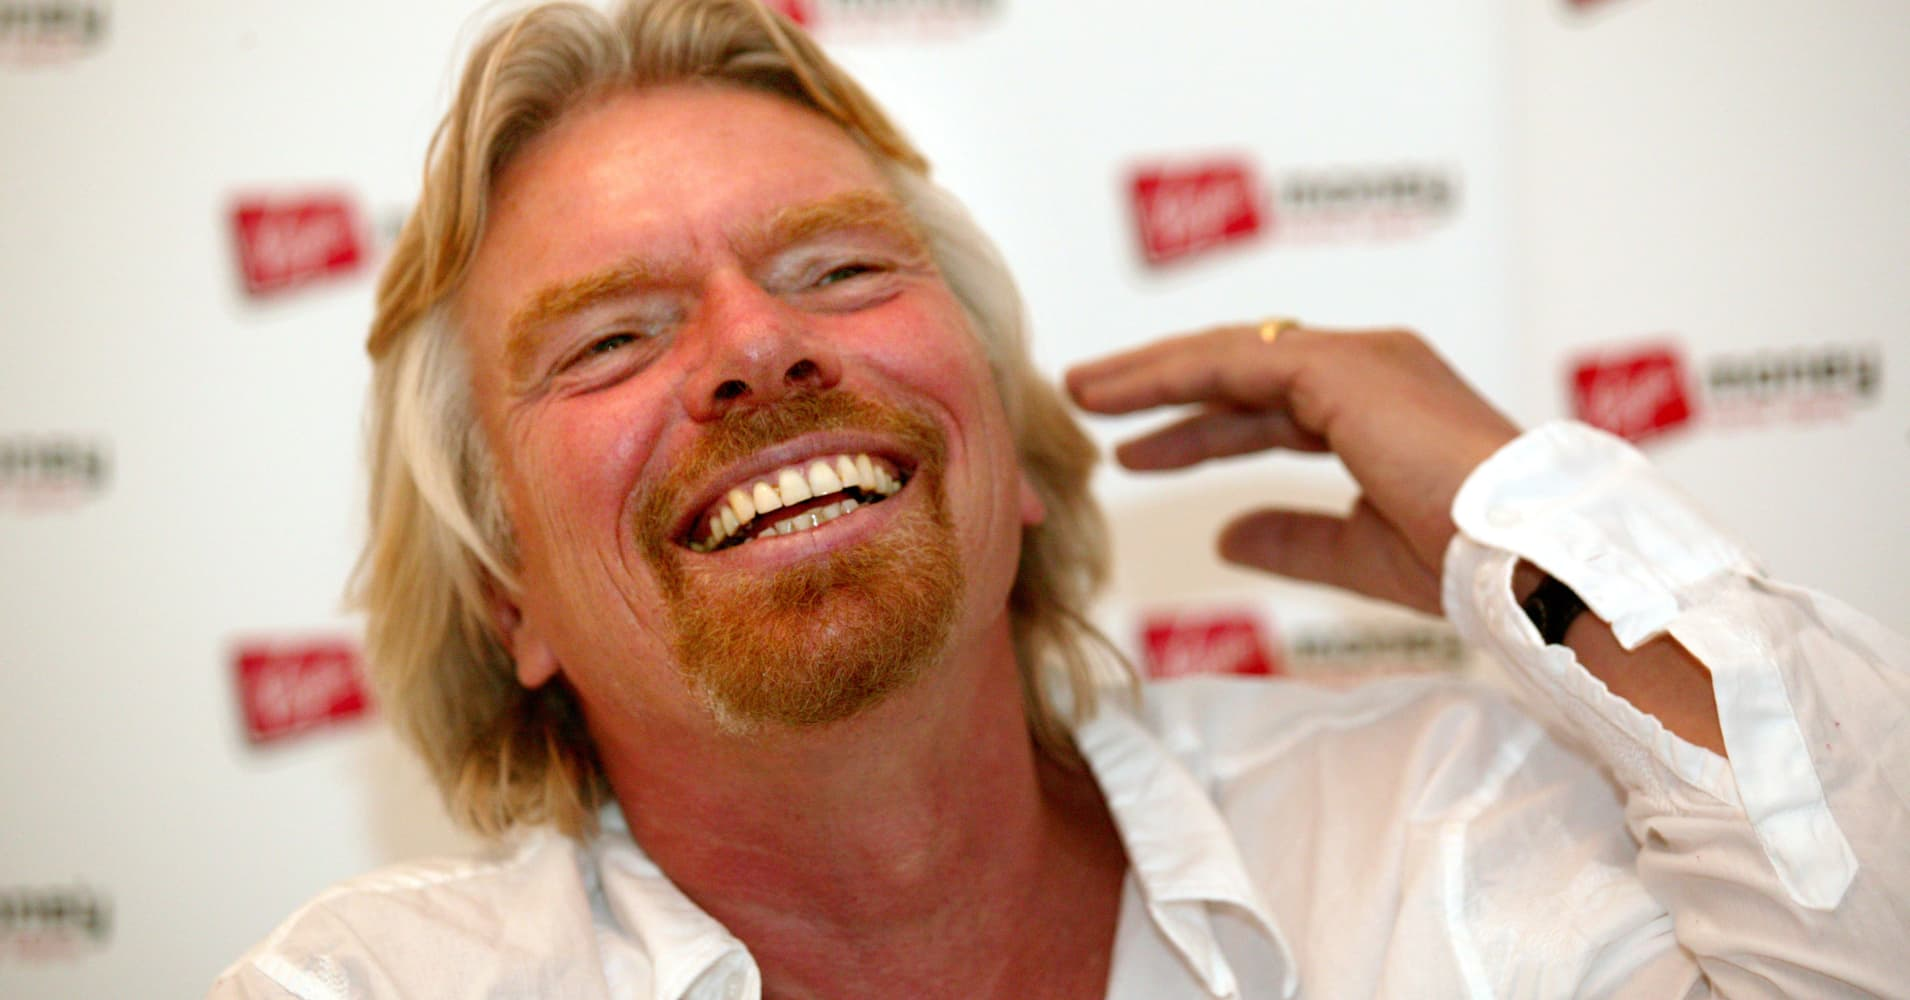 richard branson paper Essay on richard branson sir richard charles nicholas branson or known as sir richard branson is well known as the founder of virgin group he was born on july 18th 1950 in surrey, england and he is the eldest son of edward james branson and eve huntley branson, his father worked as a lawyer and his grandfather, sir george arthur.